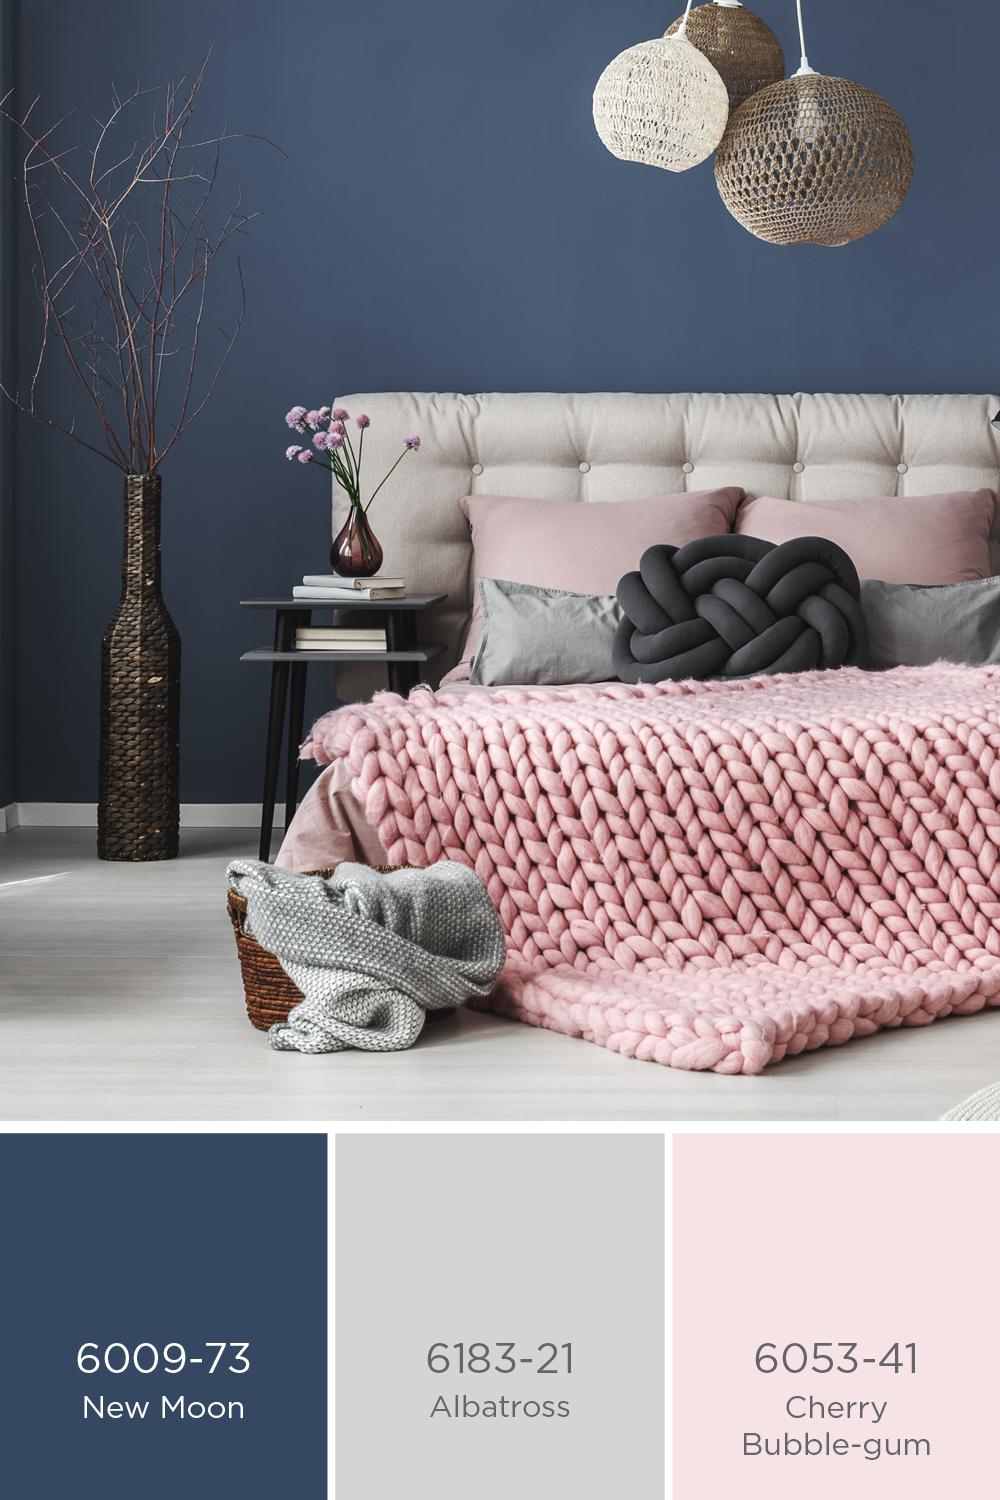 Best Sico Paints Dark Blue And Pale Pink With Subtle Touches 400 x 300